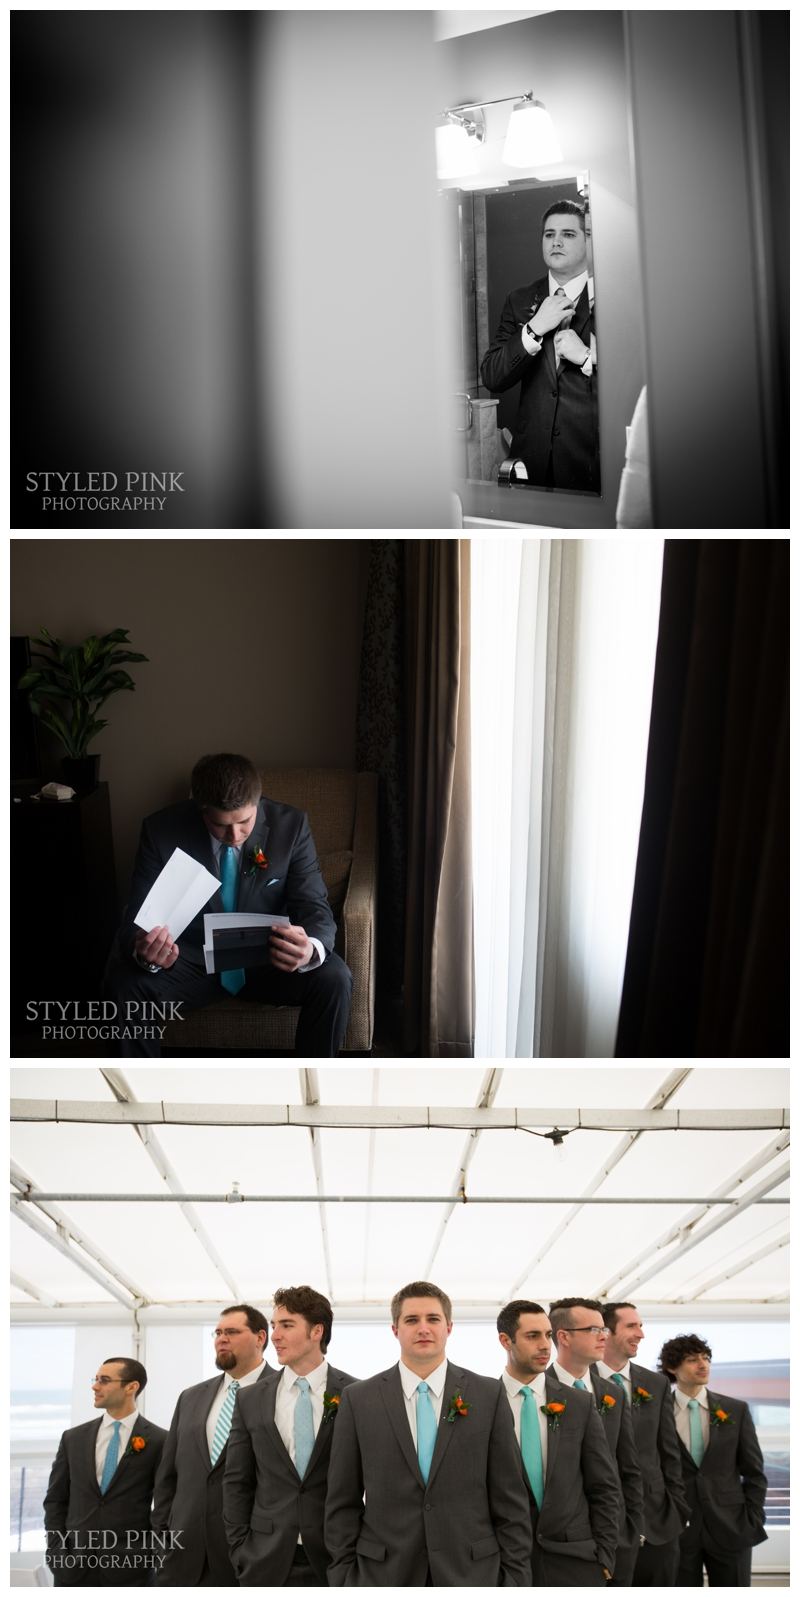 styled-pink-photography-windrift-avalon-nj-wedding-16